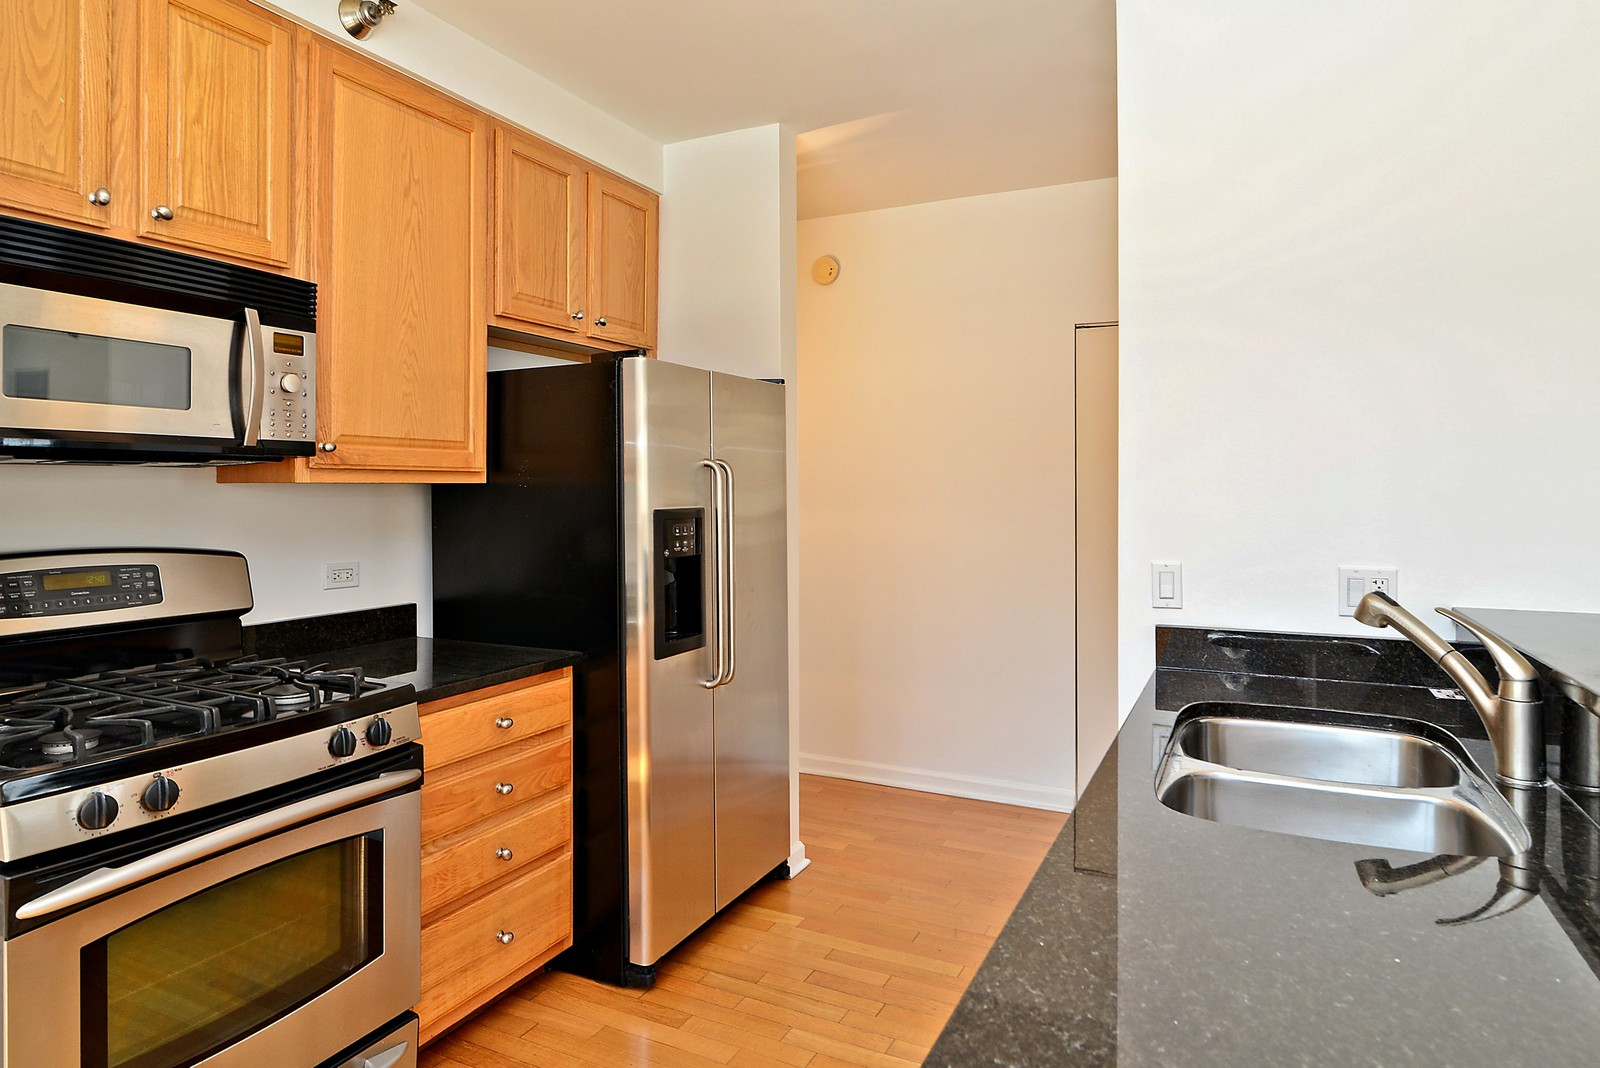 Real Estate Photography - 1111 S Wabash, Apt 703, Chicago, IL, 60605 - Kitchen